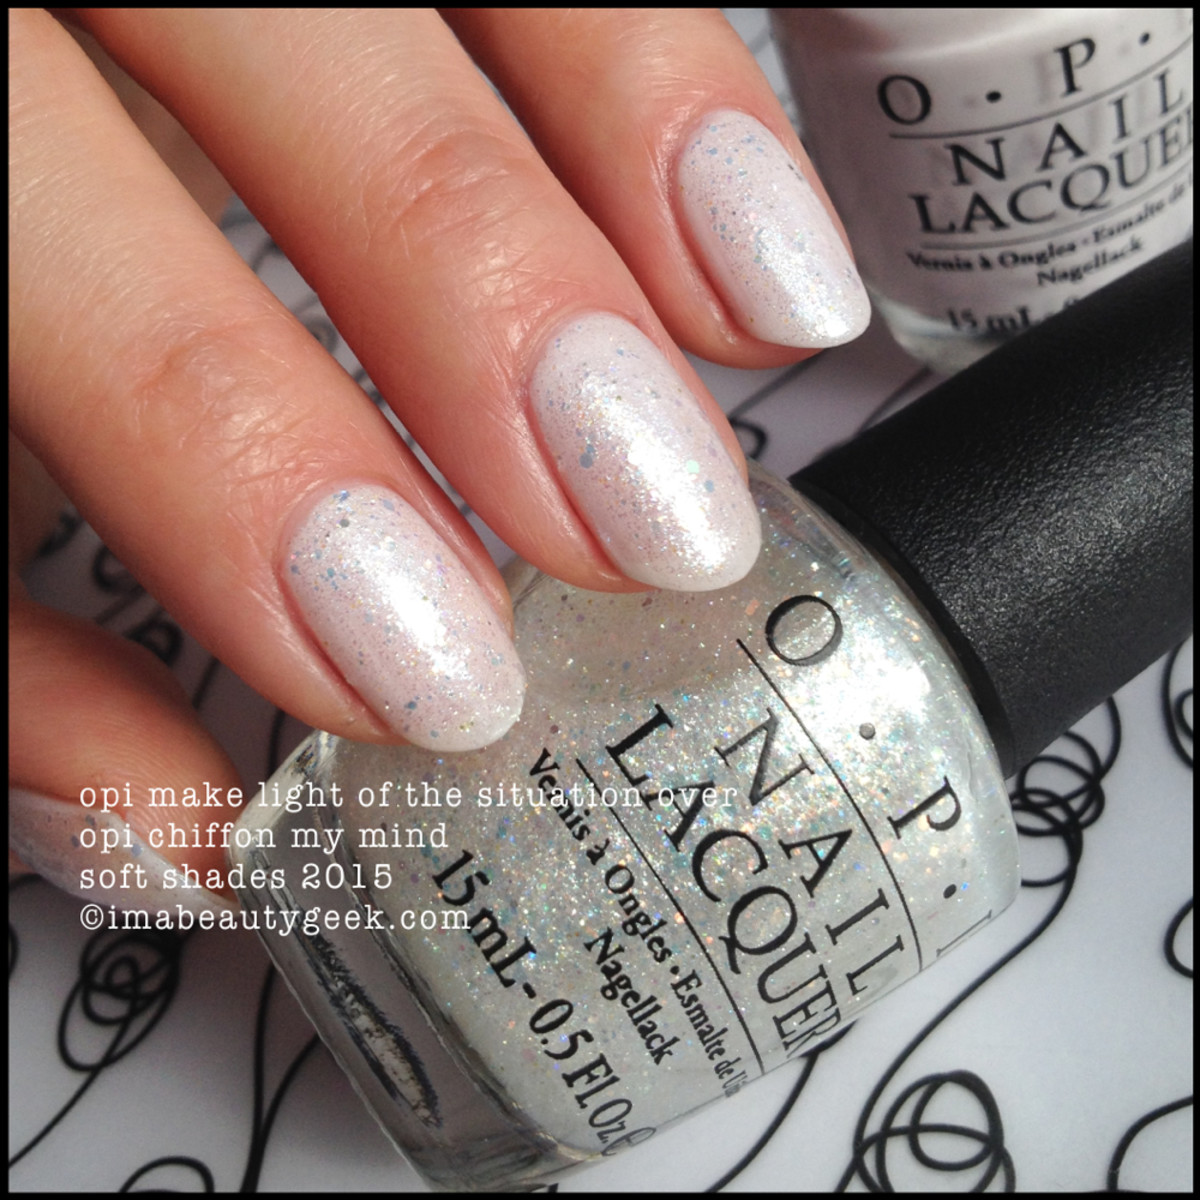 OPI Soft Shades 2015 Make Light of the Situation